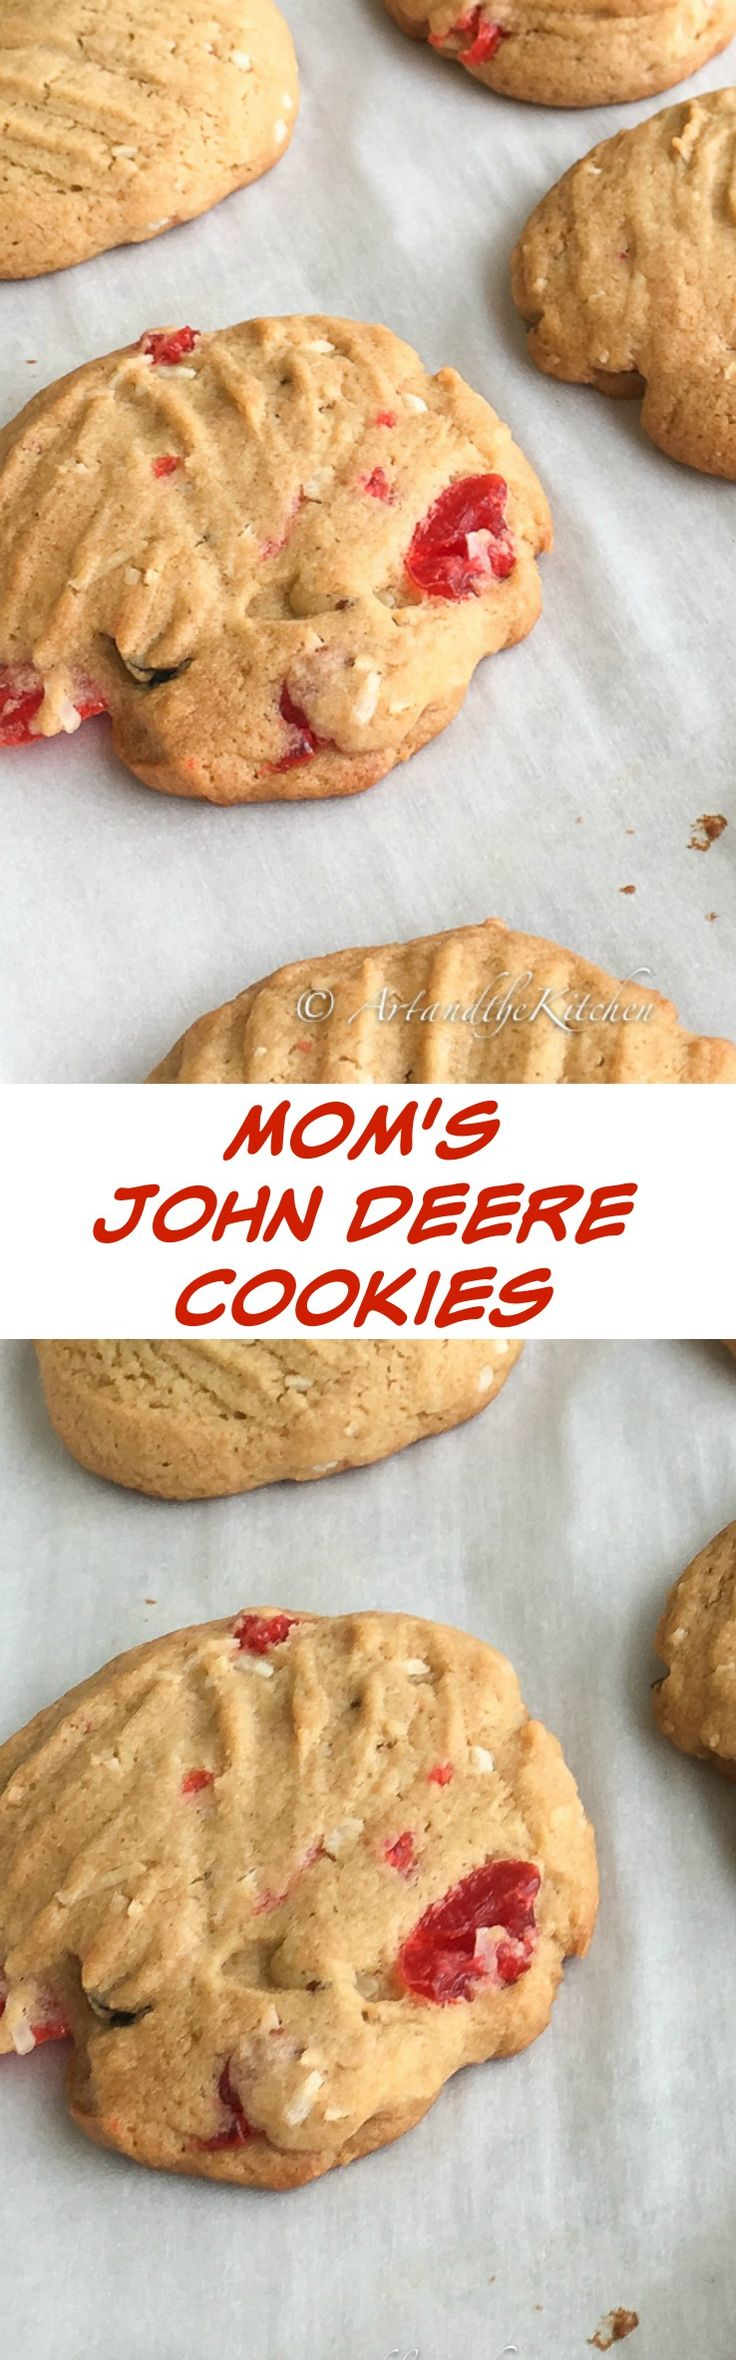 This recipe for John Deere Cookies is an old recipe of my Mom's. I have no idea why they are called John Deere cookies other than the fact that my Dad worked as a mechanic for John Deere.